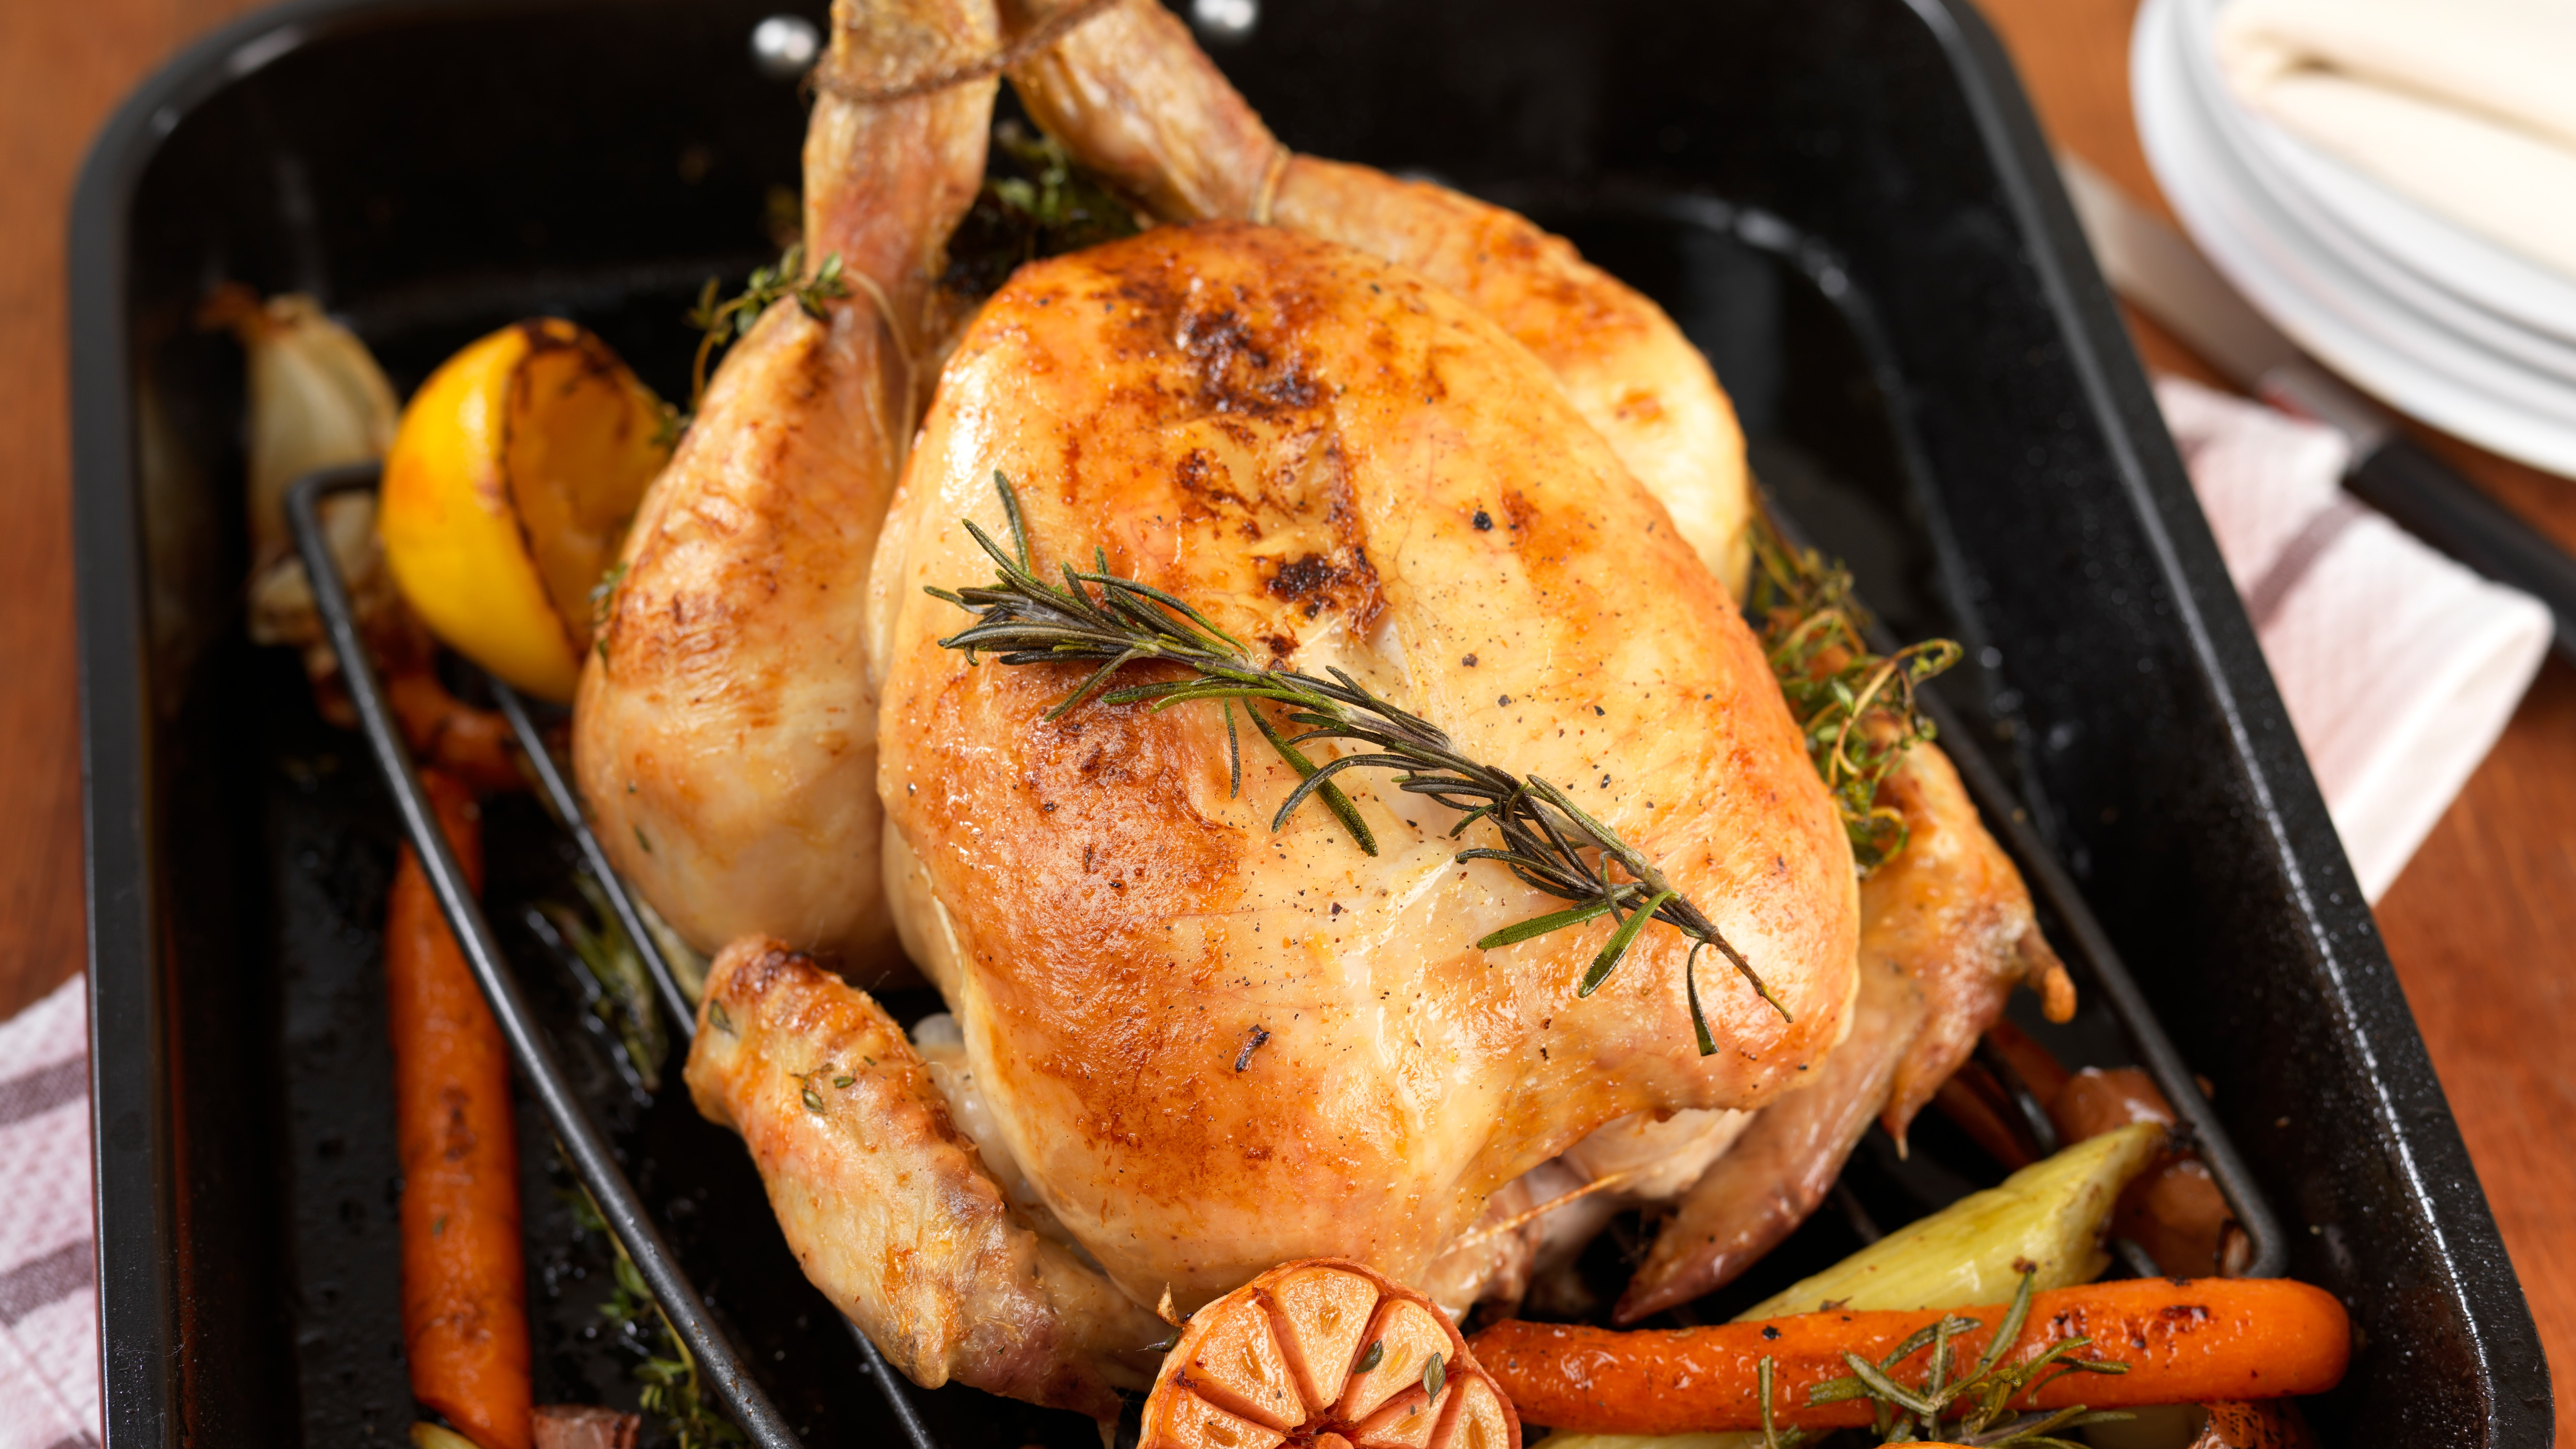 How long to cook roast chicken in fan forced oven